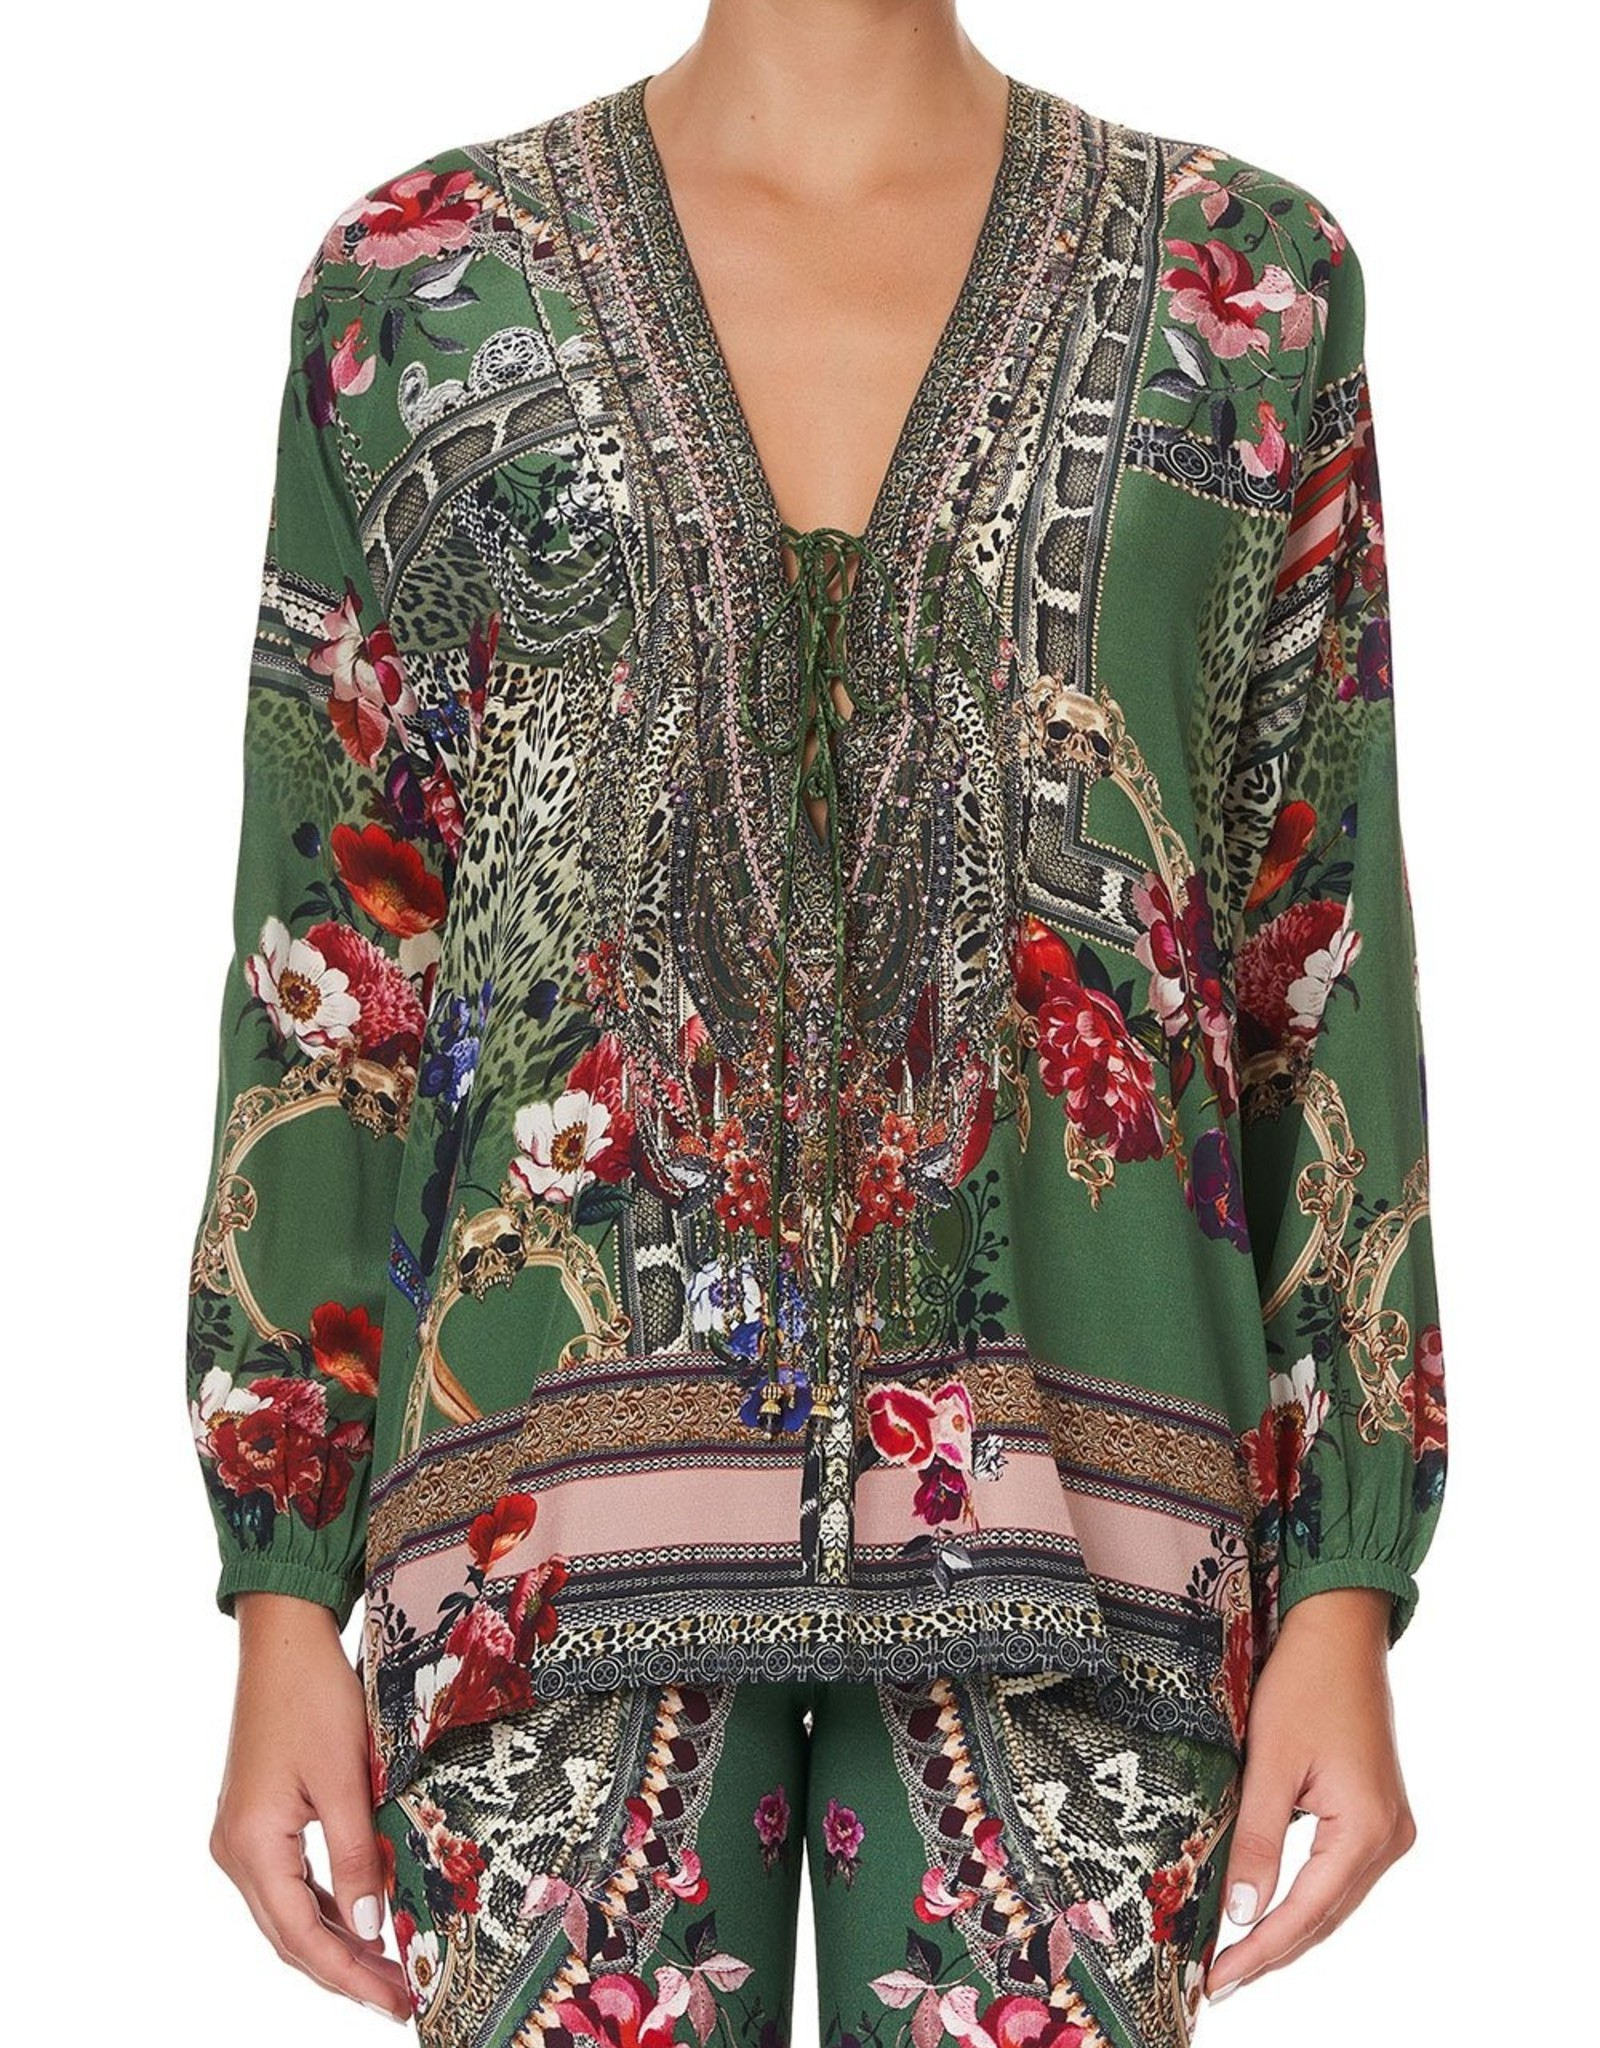 CAMILLA TALES OF TIME LACE UP BLOUSE